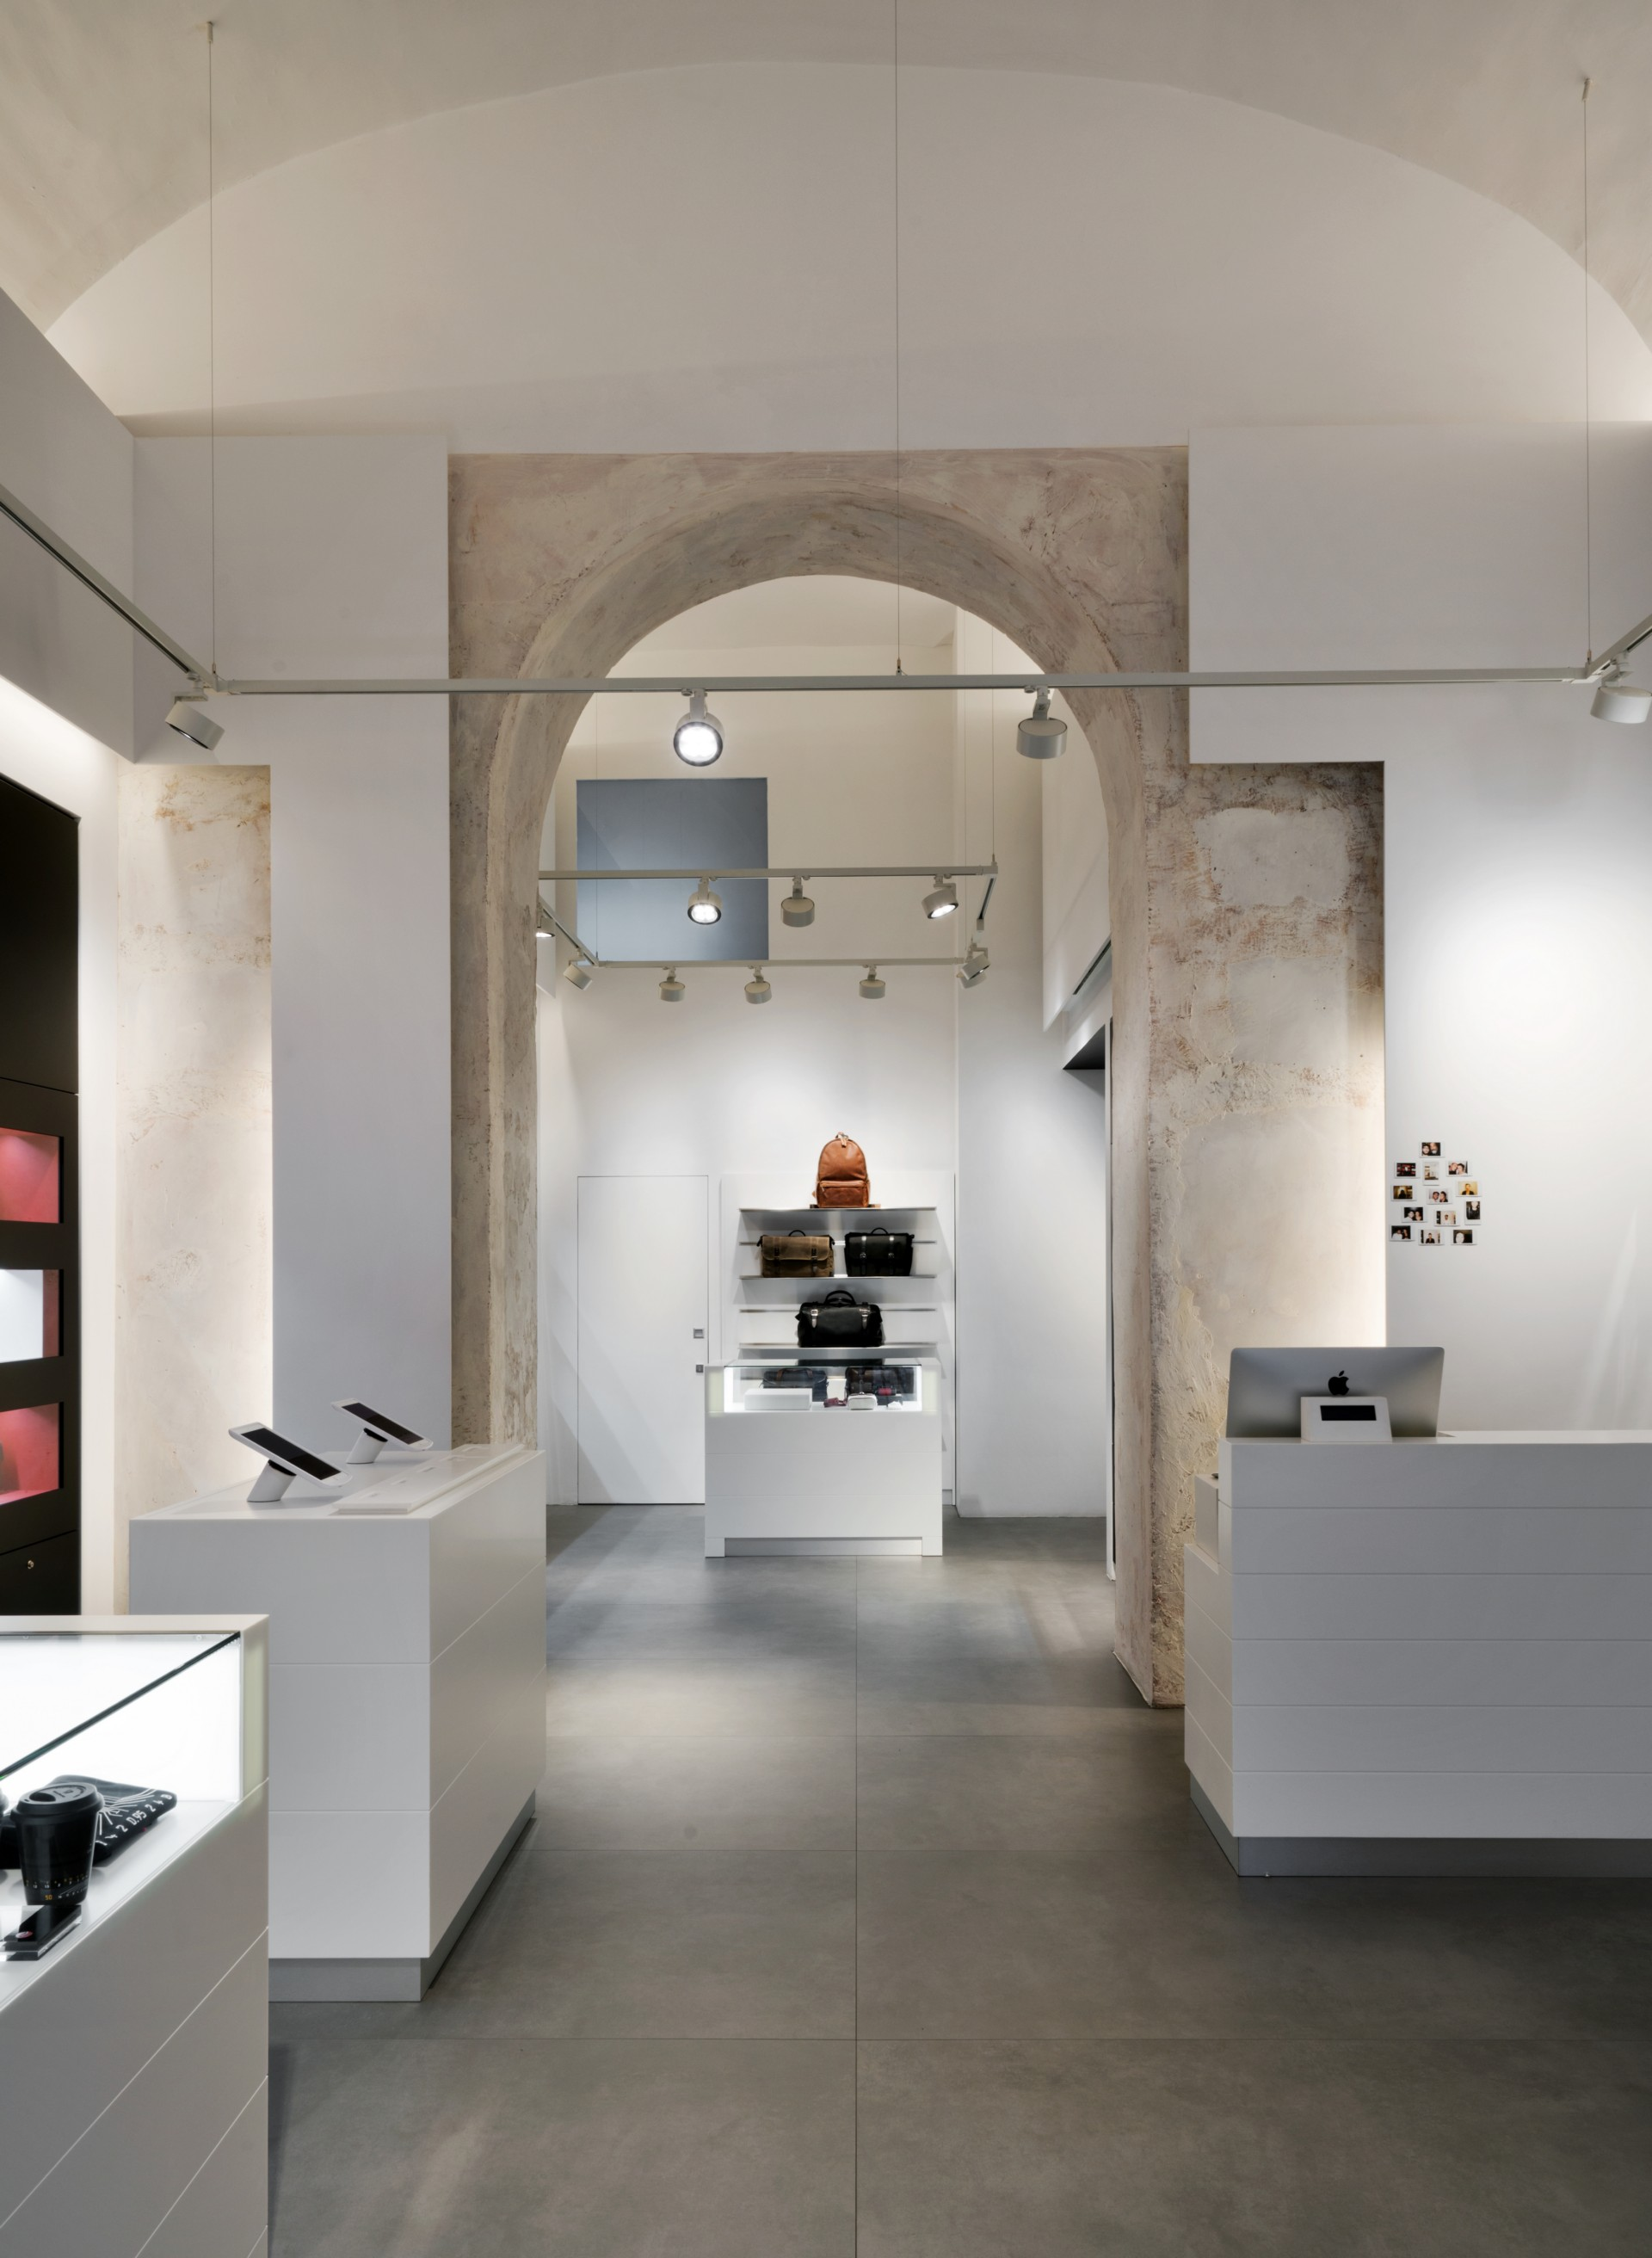 Dc10 A Surface Project For The Leica Store In Rome